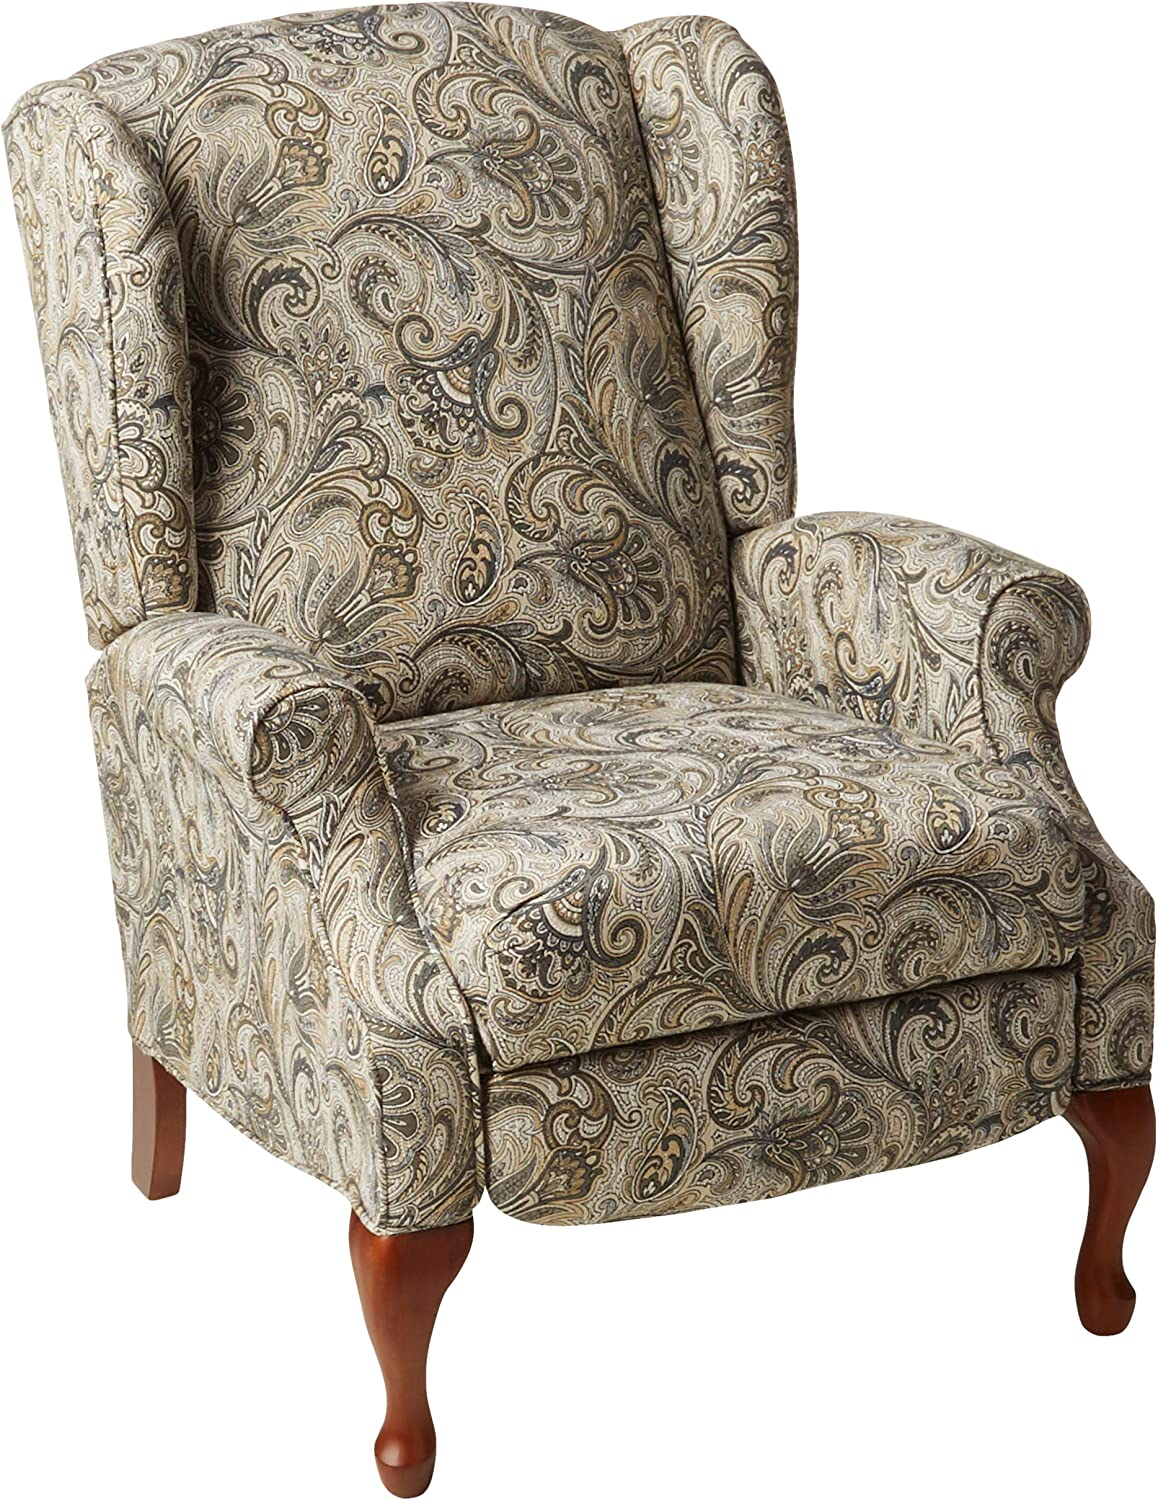 Lane Home Furnishings 6002-11 Luisa Prussian Hi Leg Recliner,Medium